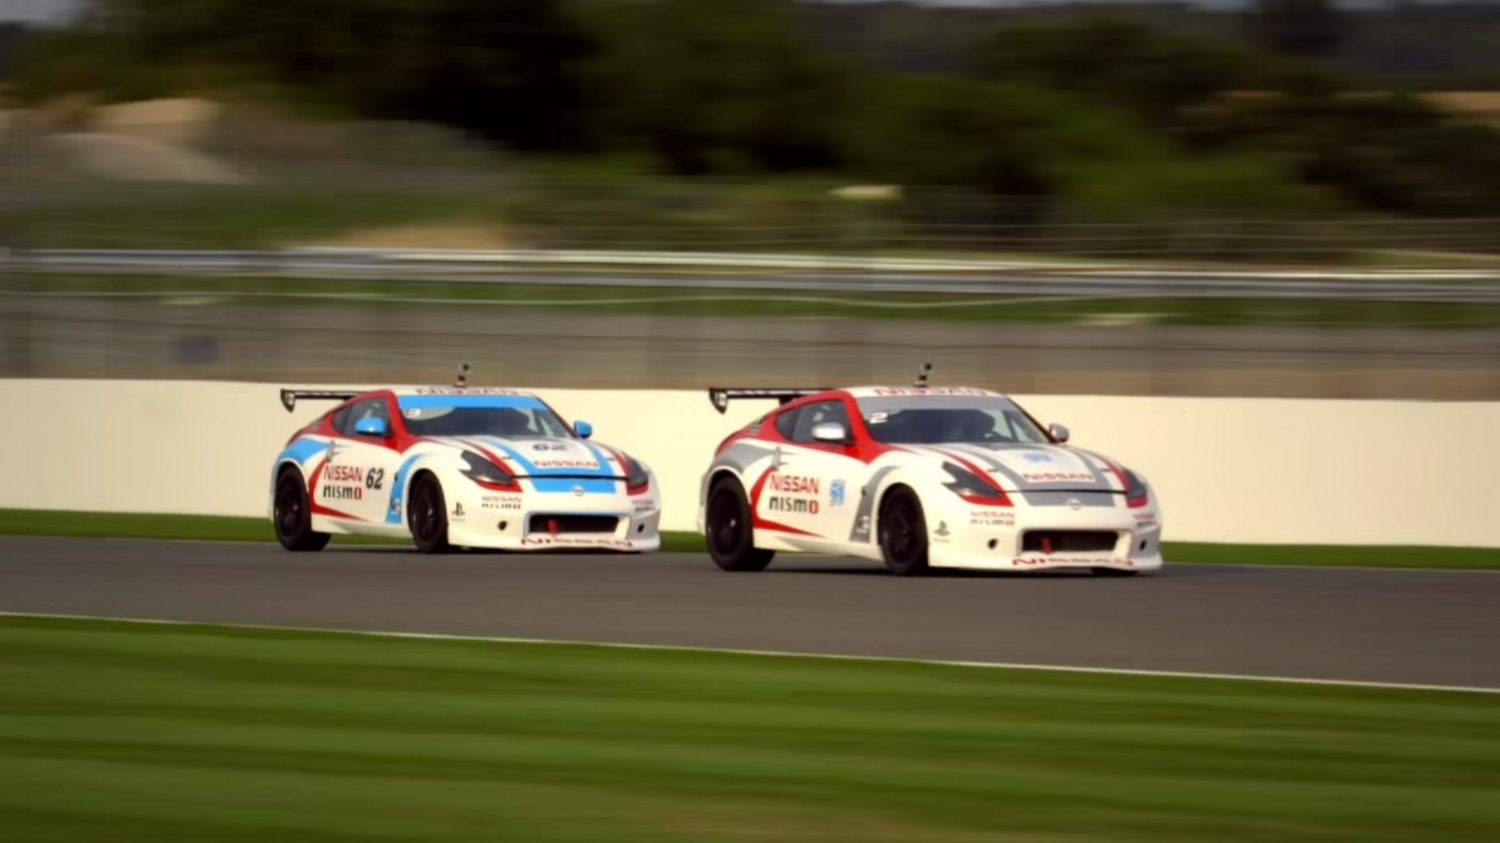 GT Academy Video. Season 4, Episode 6. May the Best Man Win.